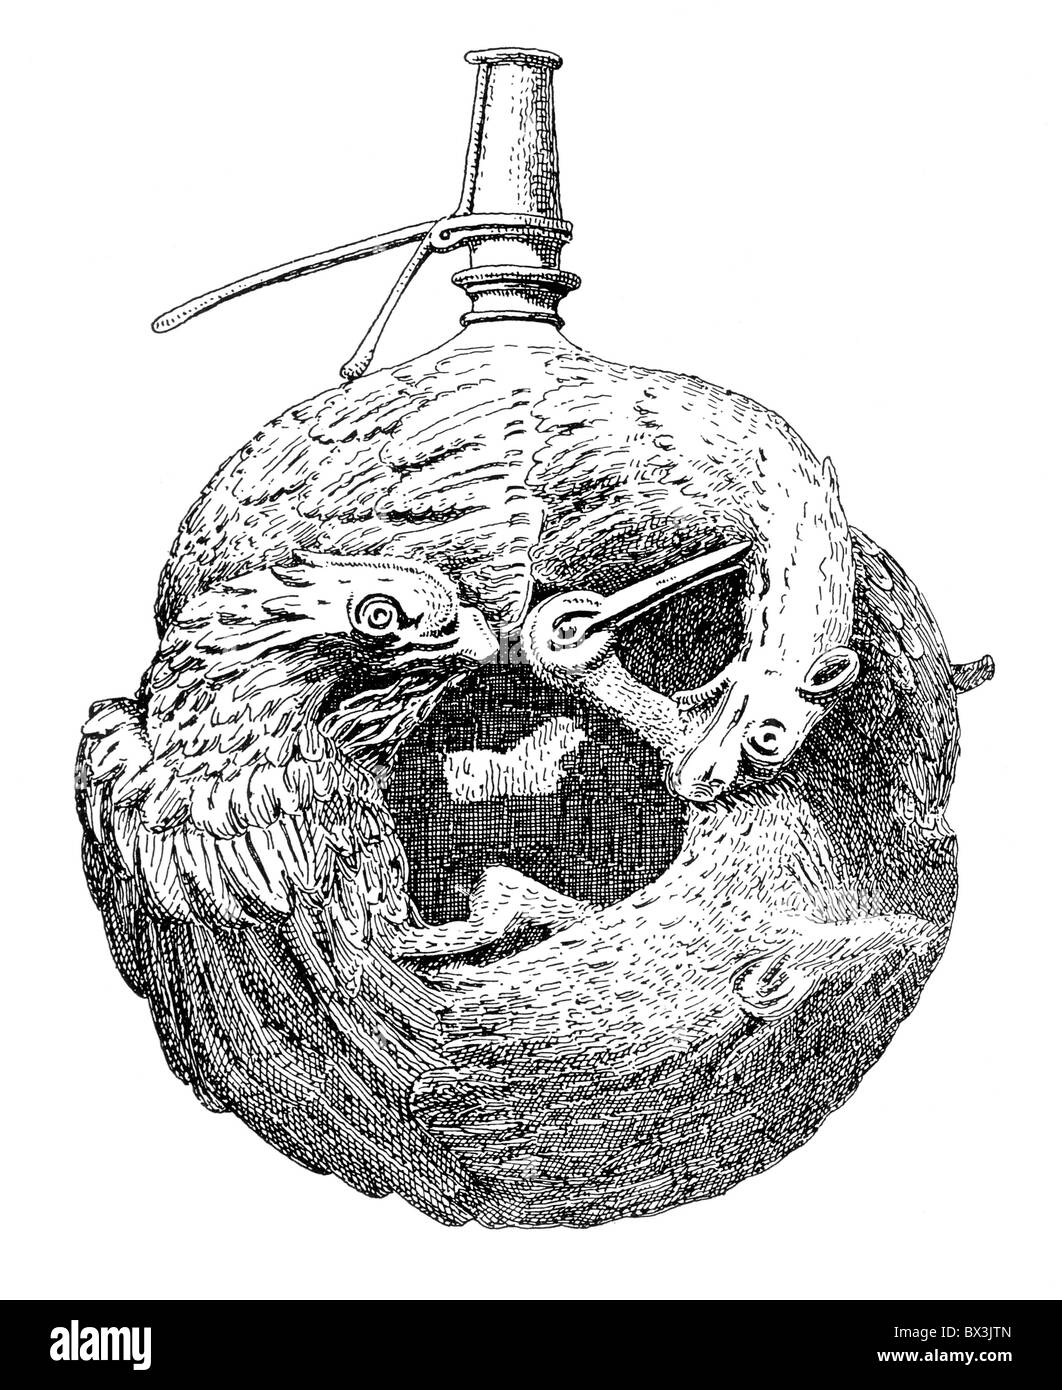 Engraving of a lavishly ornamented Wooden Powder Flask circa 16th century - Stock Image